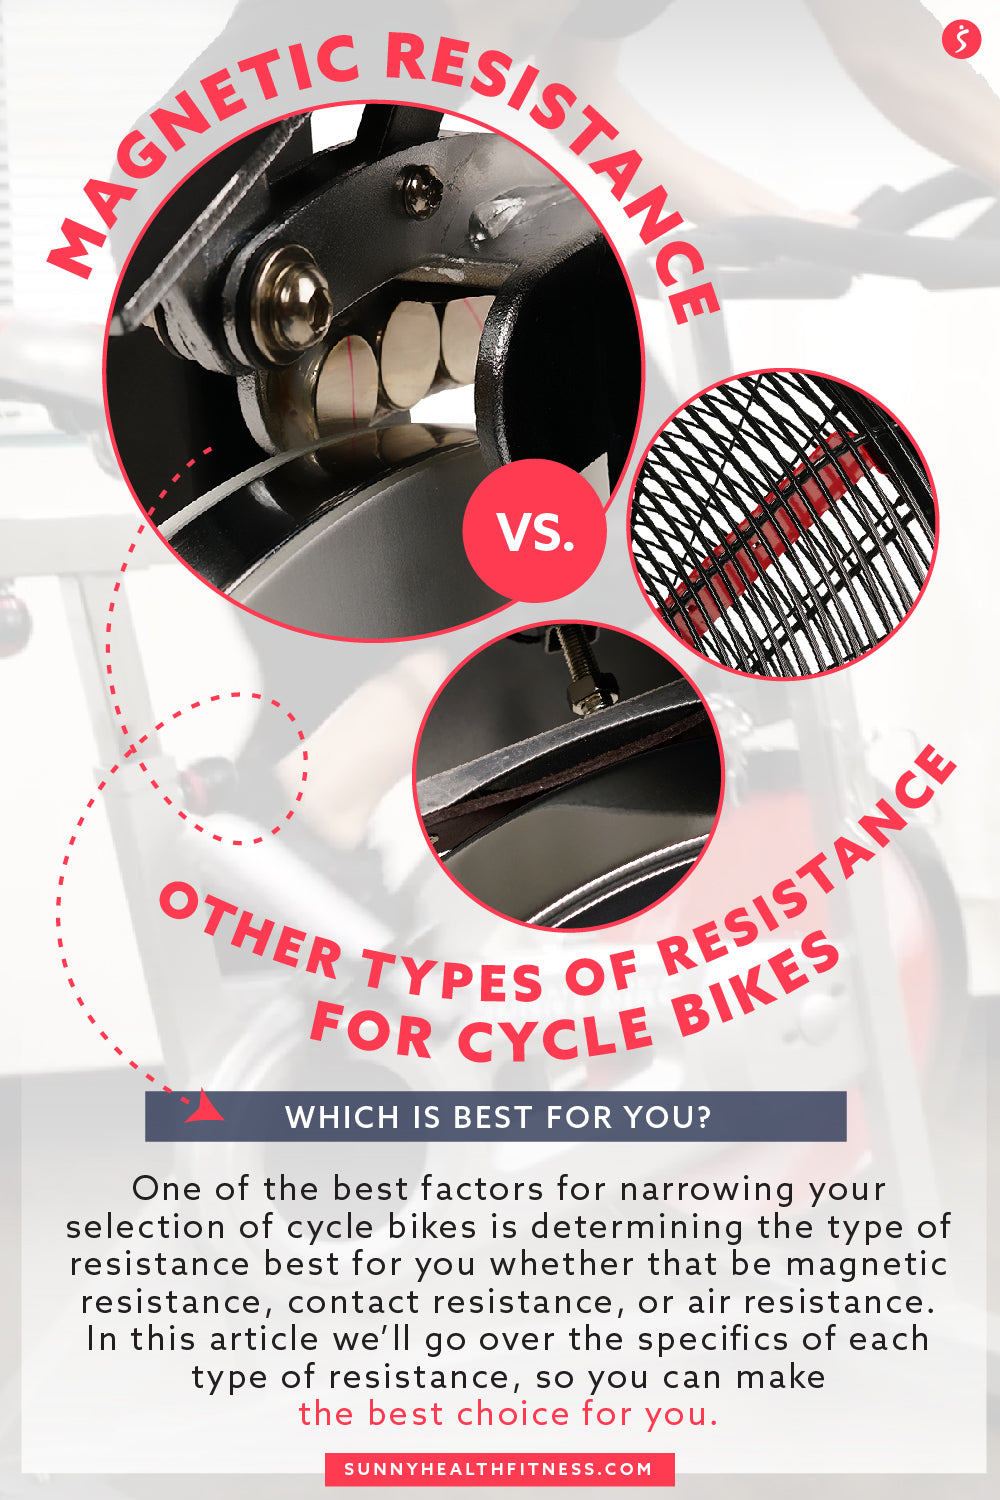 Magnetic Resistance vs. Other Types of Resistance for Cycle Bikes Infographic